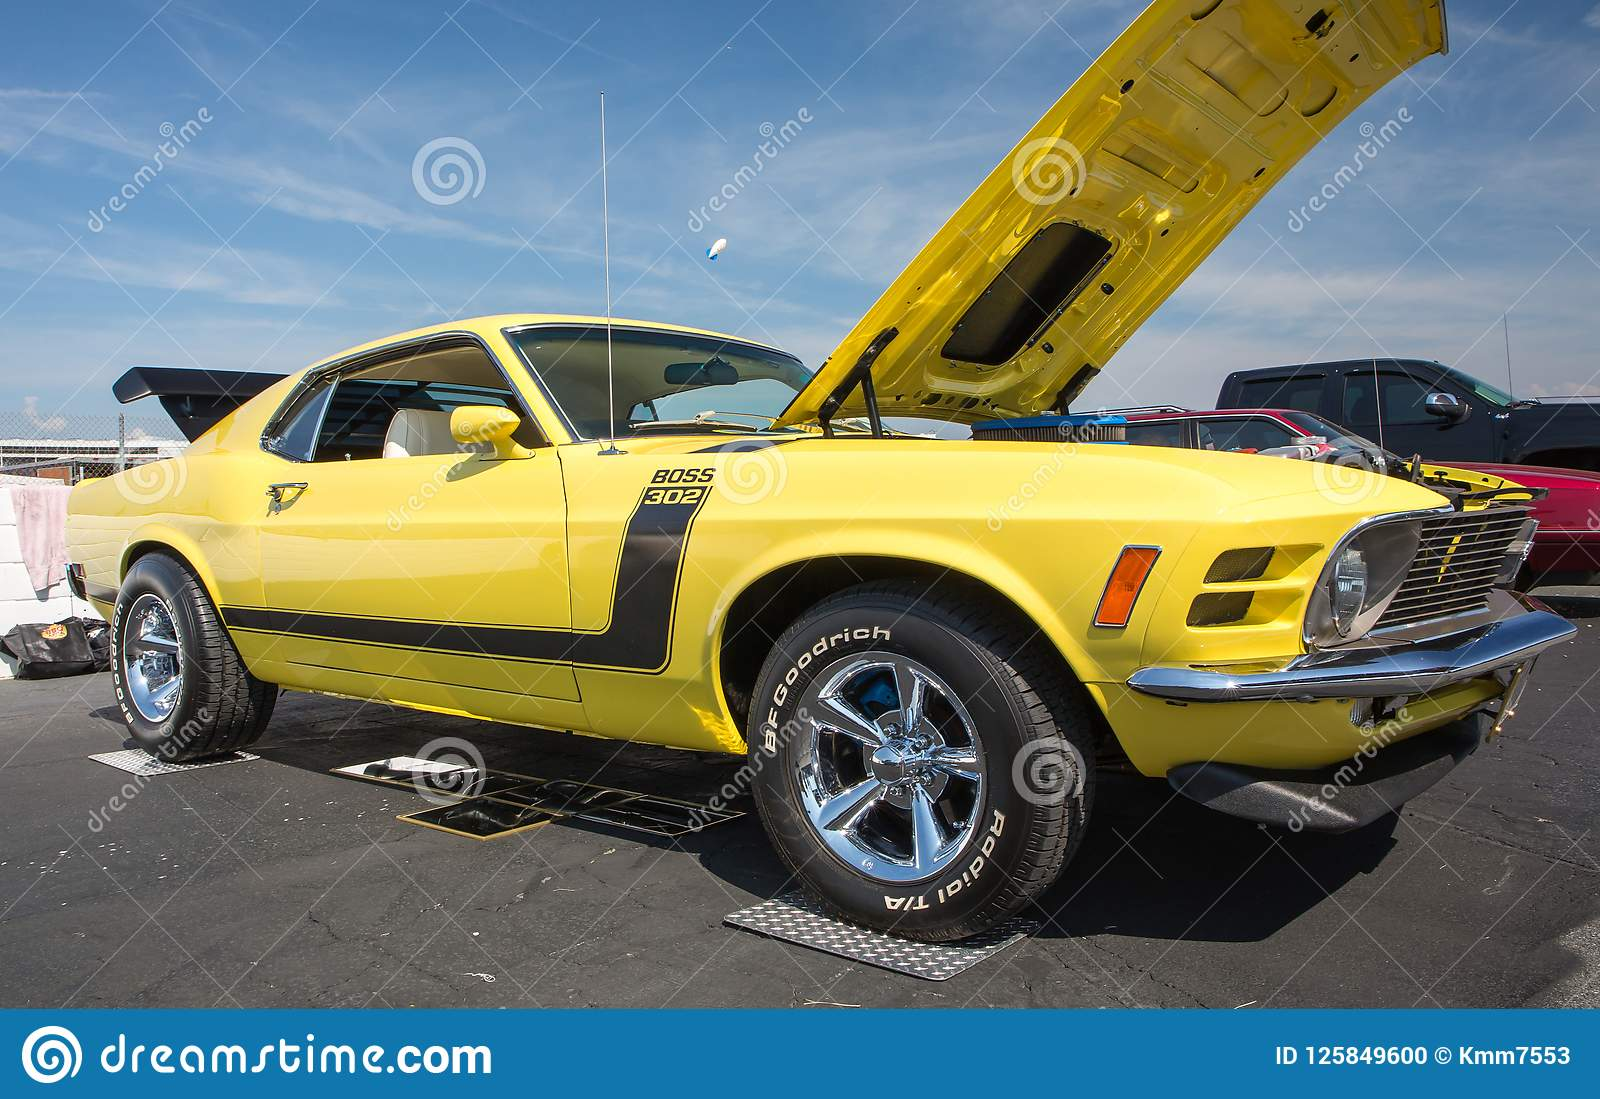 1970 Ford Mustang Boss 302 Editorial Image Of Lights 125849600